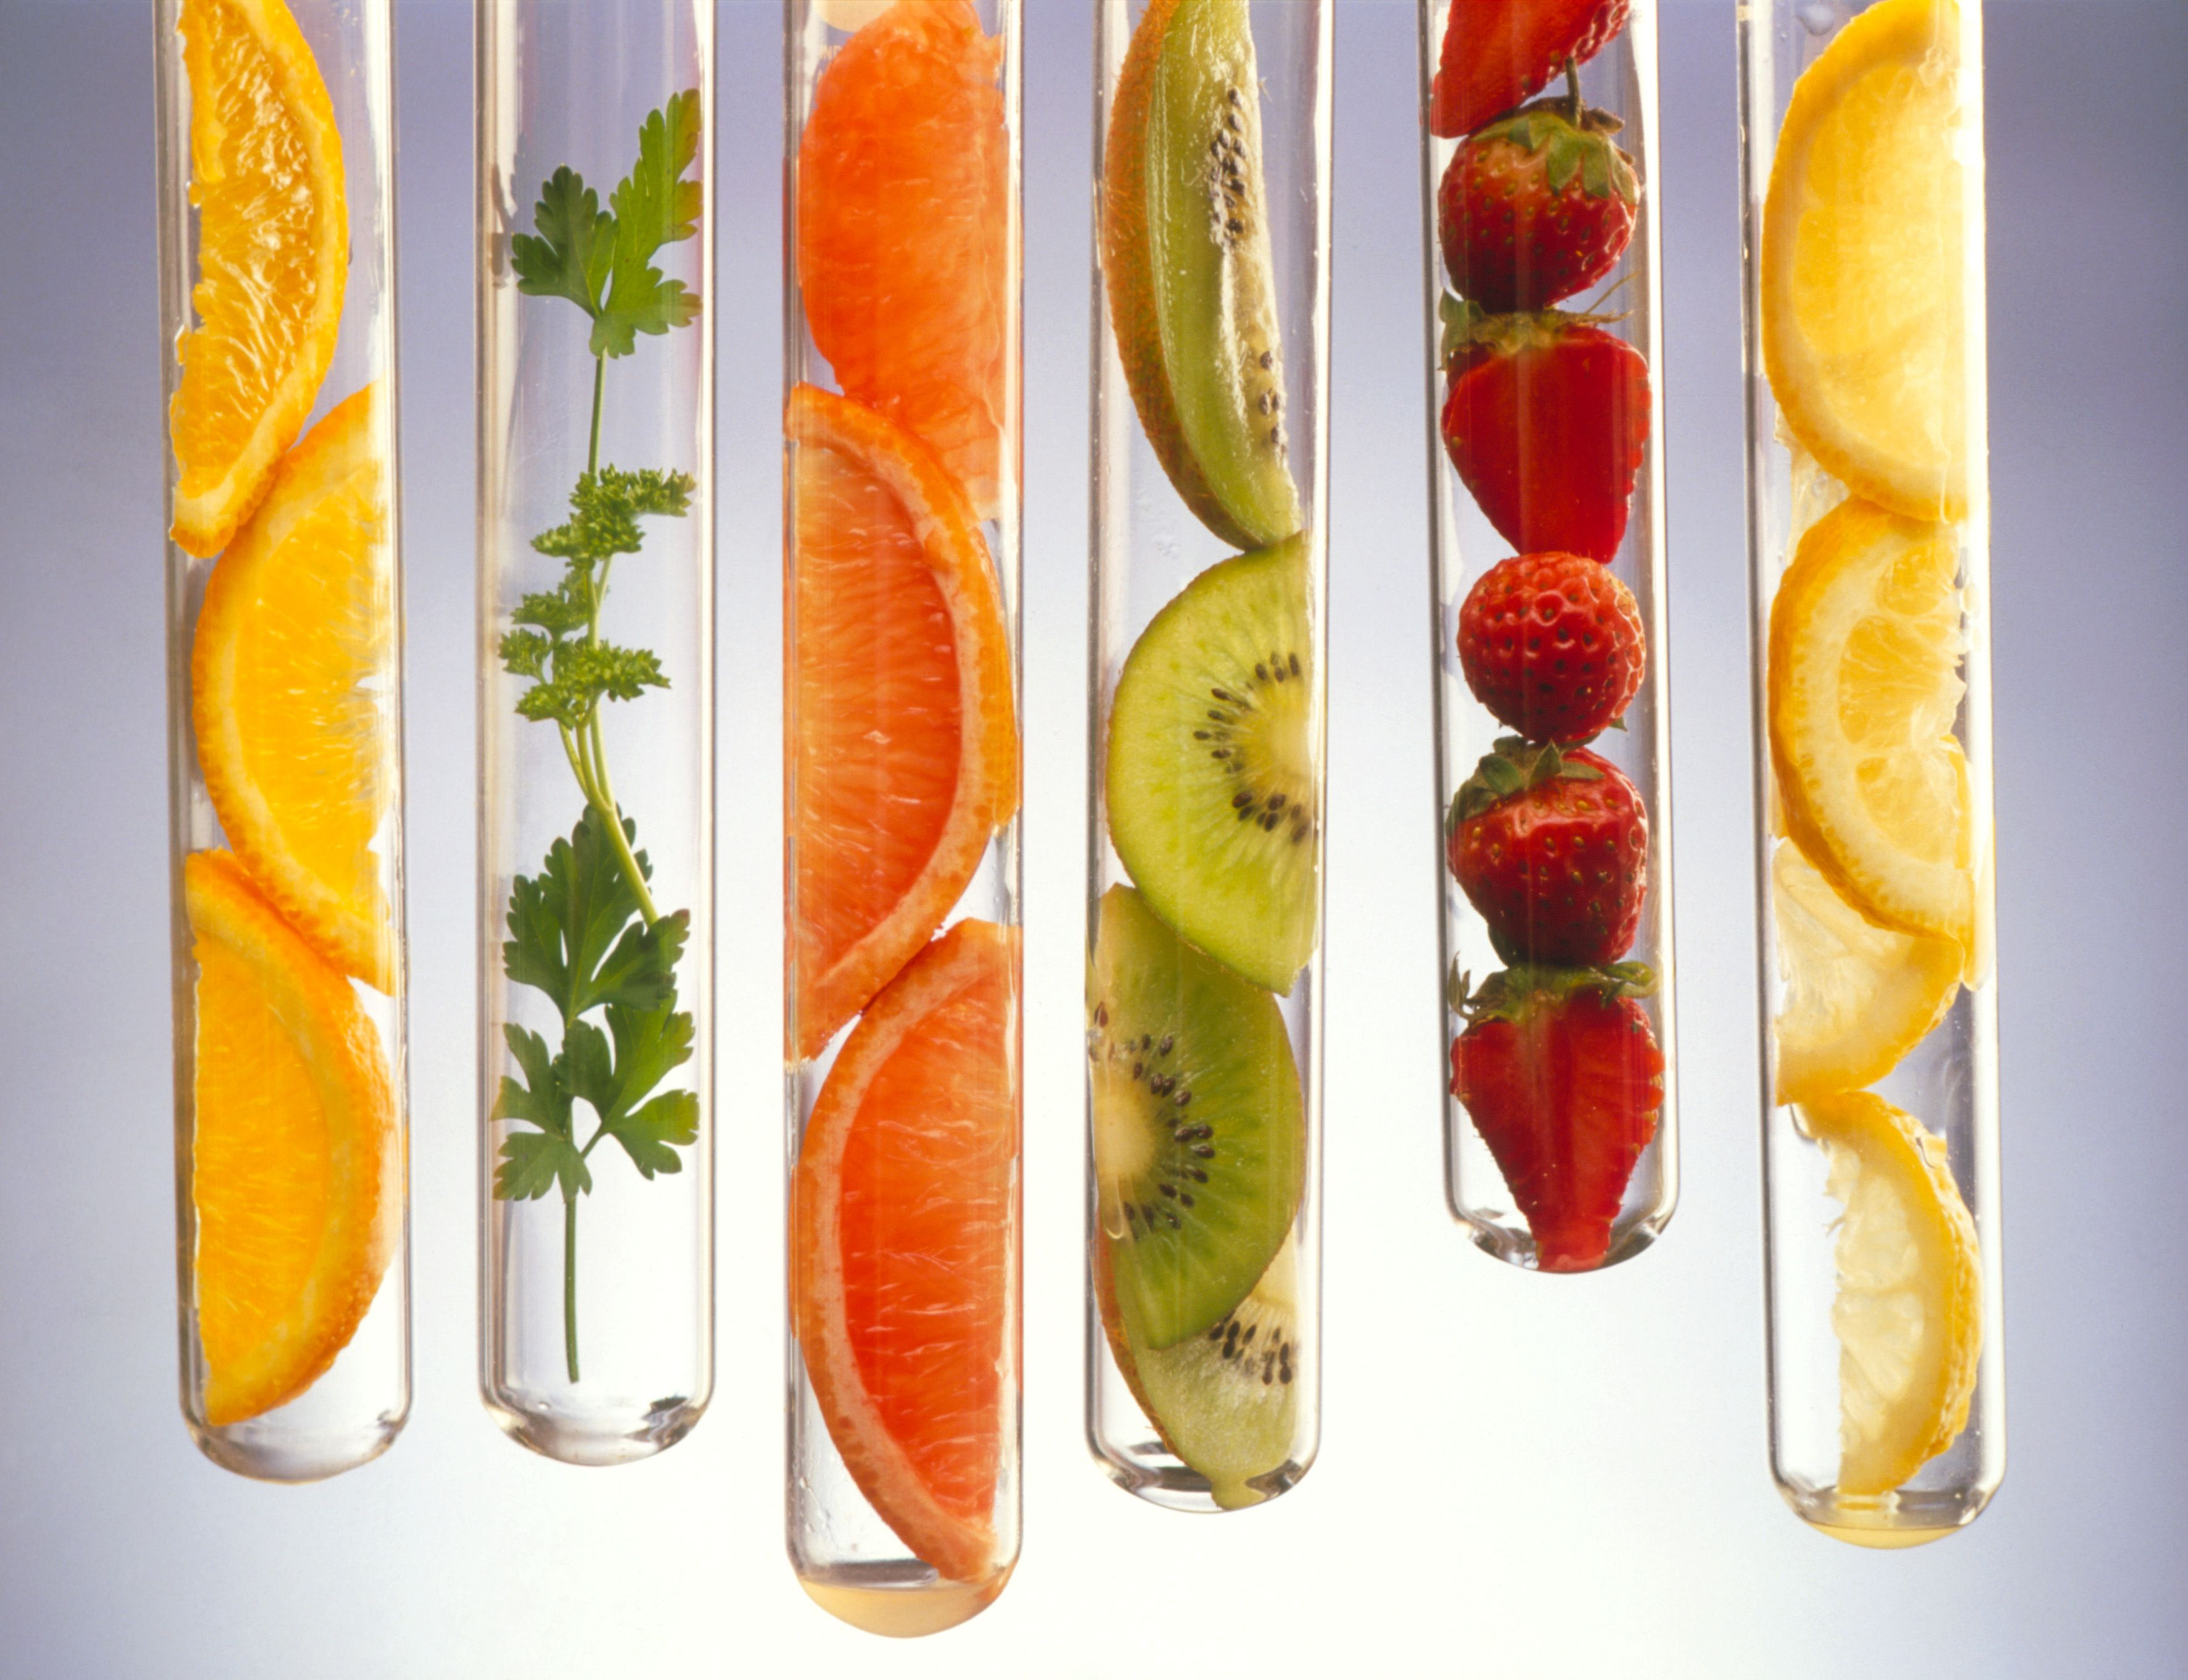 vitamin-rich fruits in test tubes